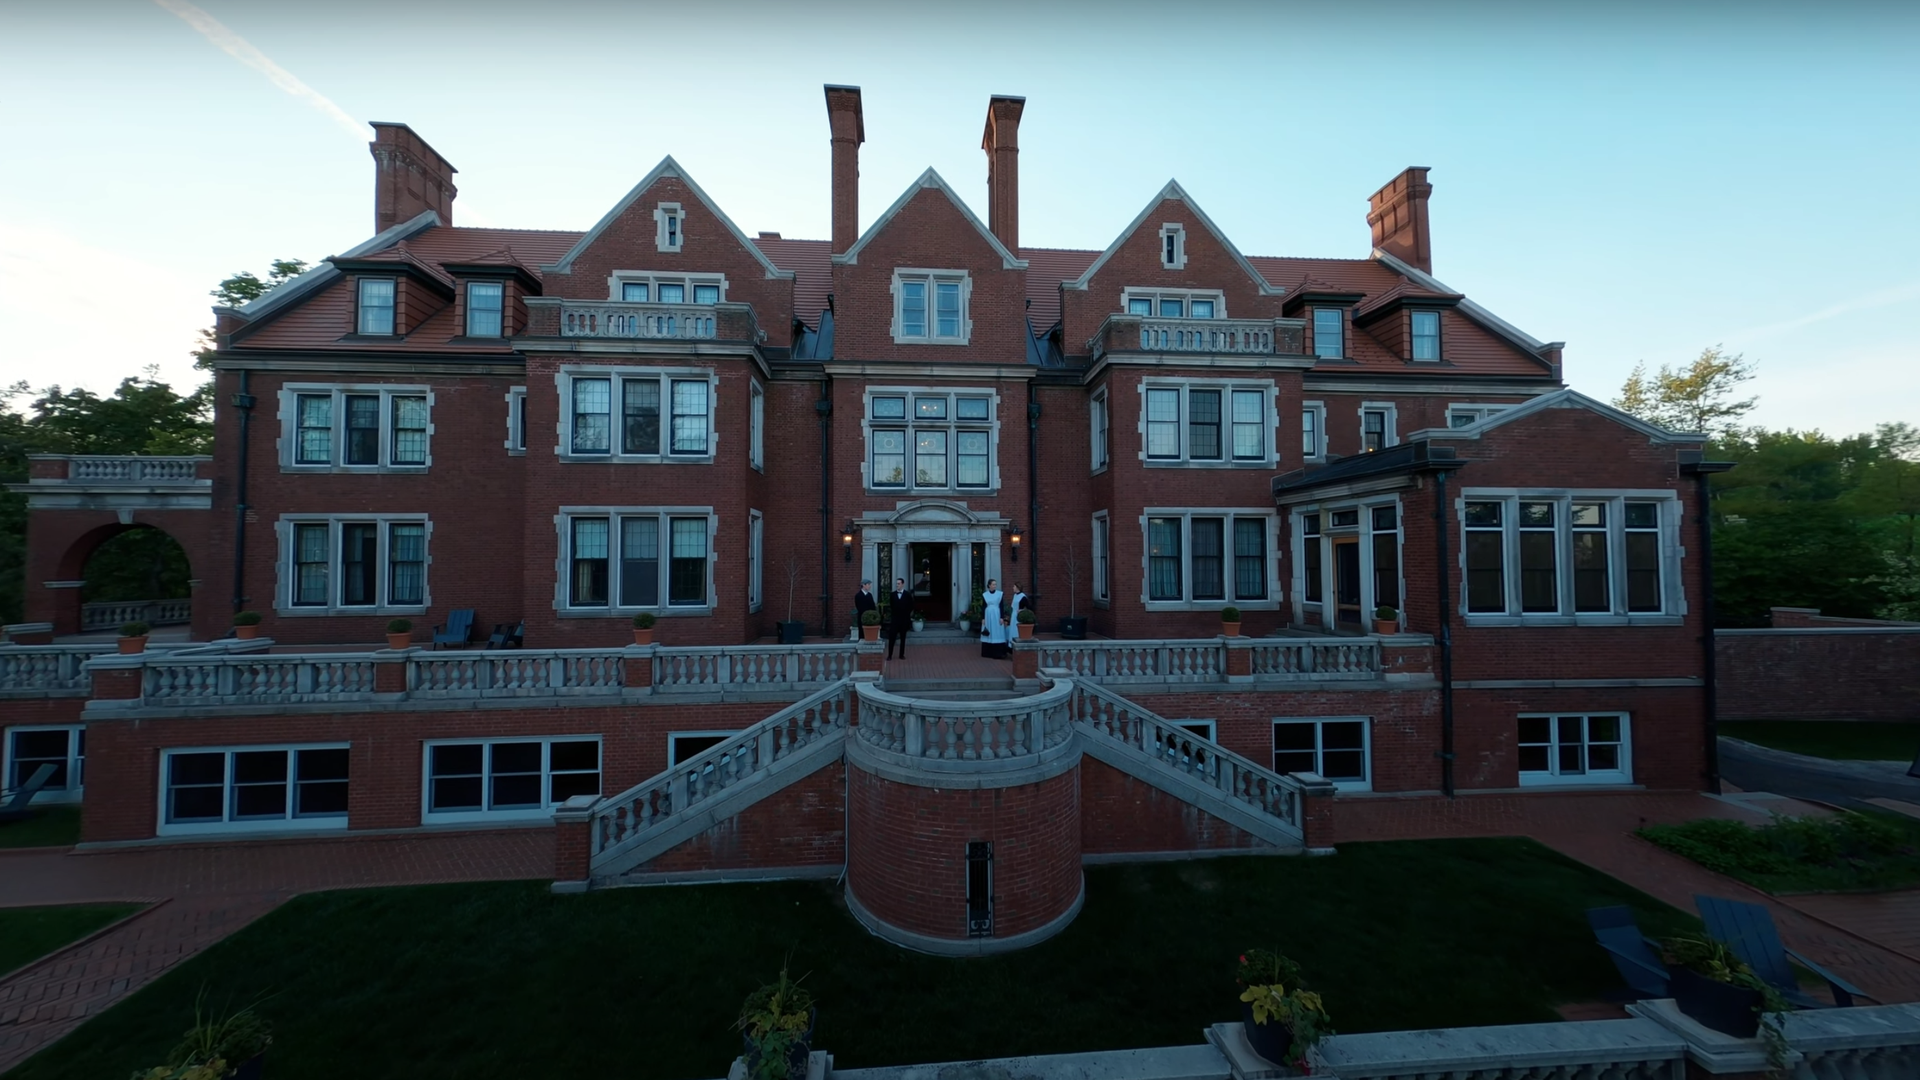 The exterior of Duluth's historic Glensheen mansion, captured by drone video.